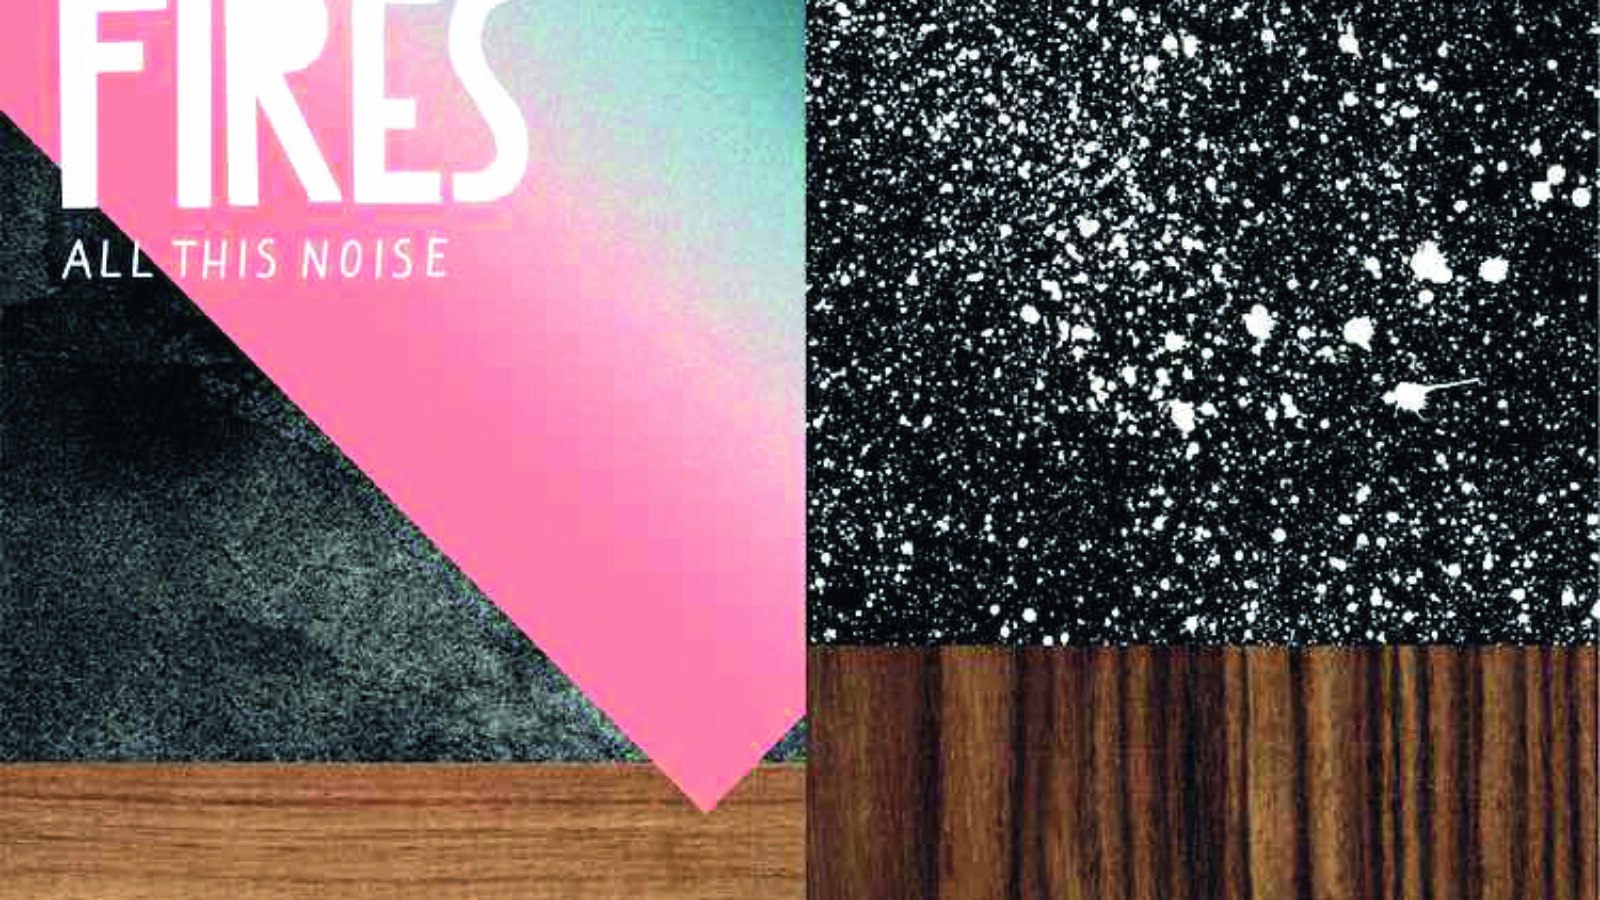 Auf die Ohren: Small Fires – All This Noise